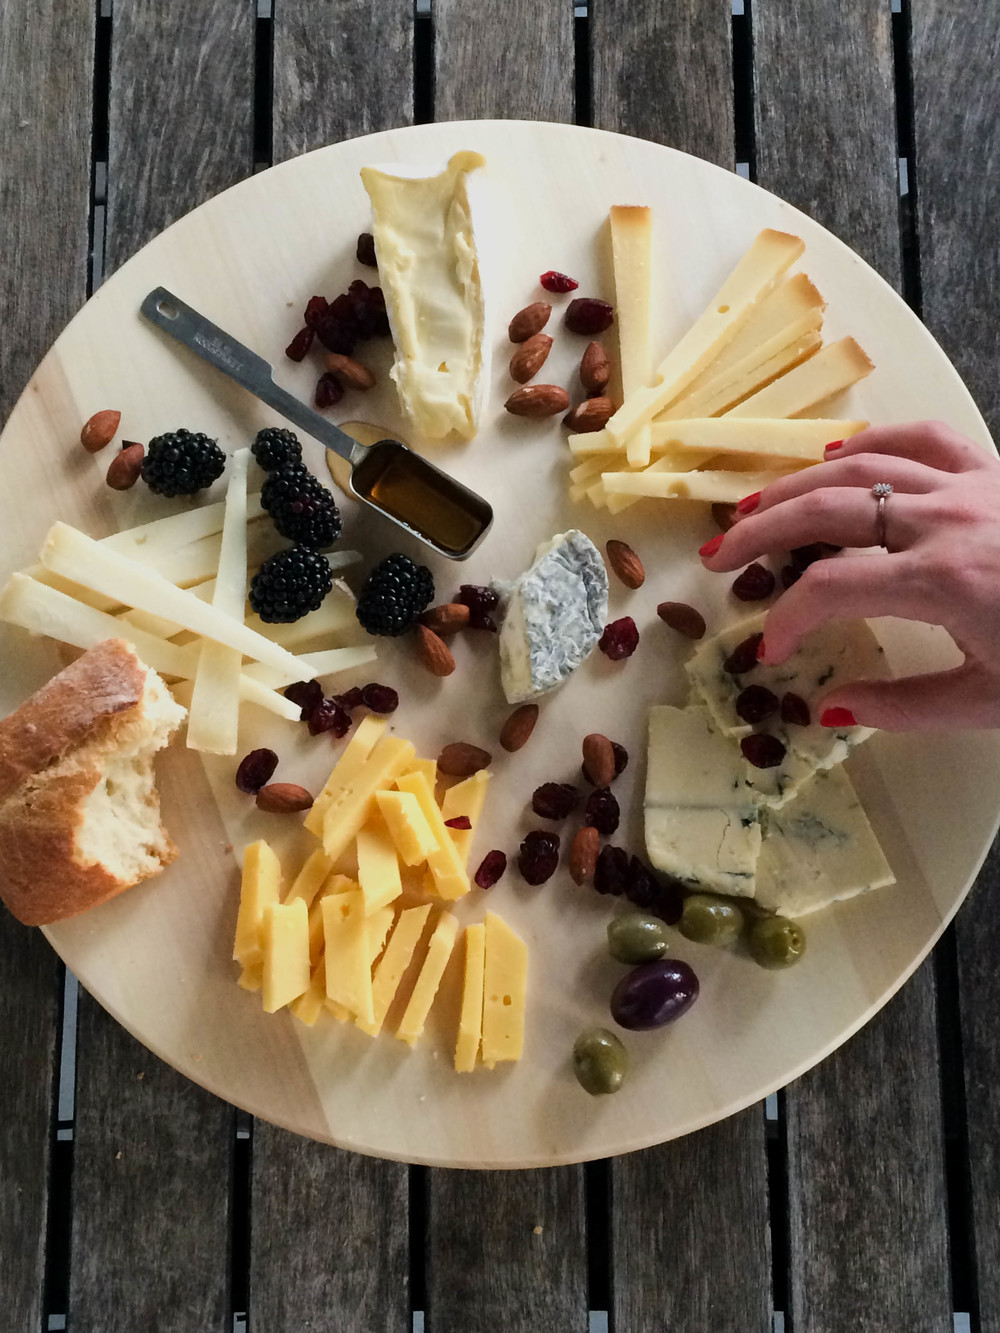 The cheese are listed below, clockwise from the top (then into the center).